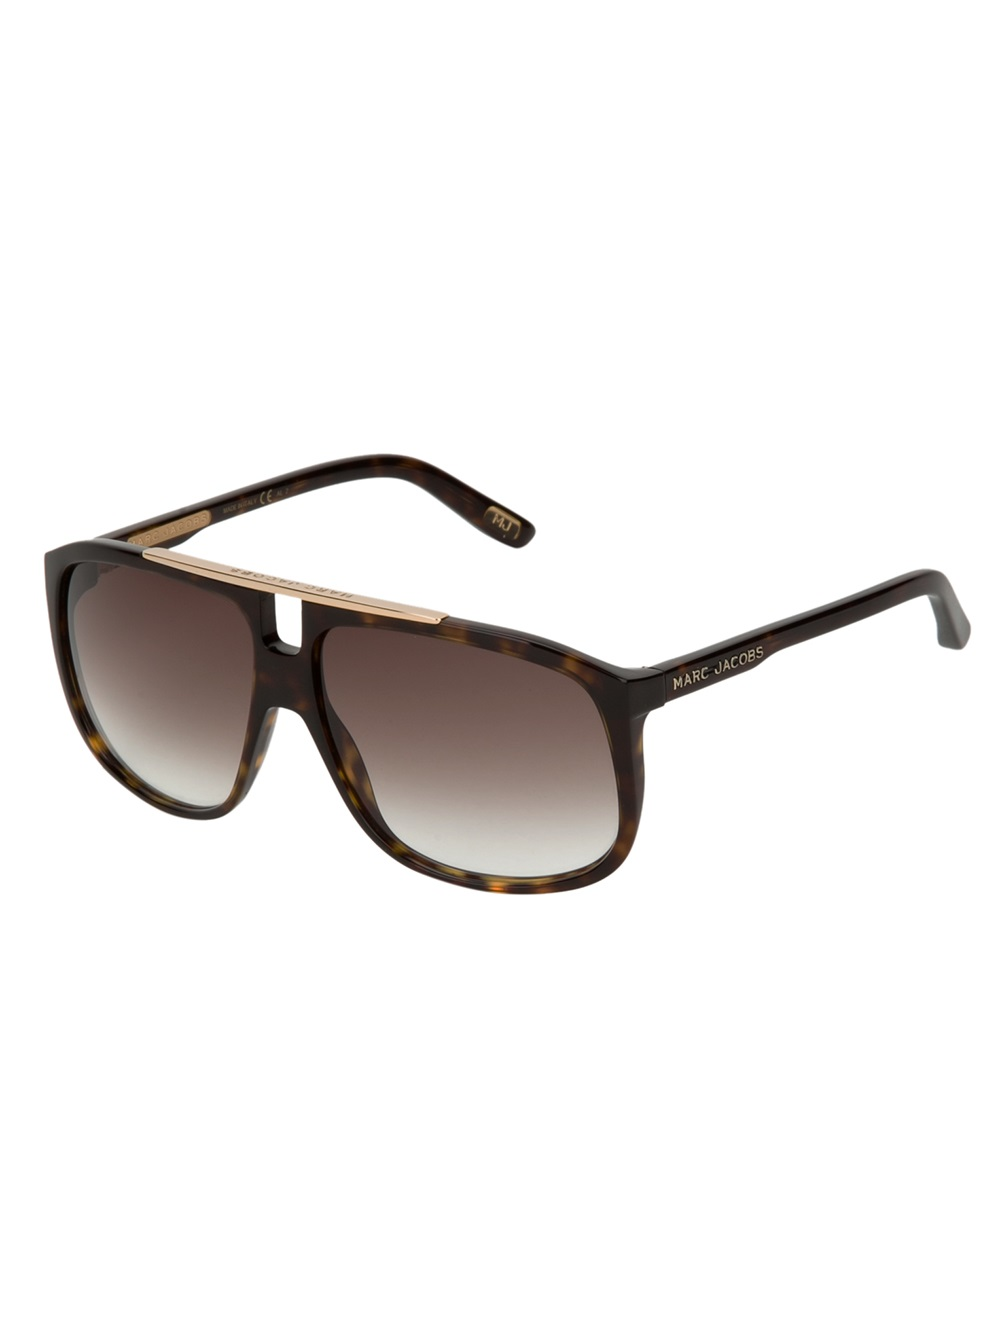 Marc Jacobs Mens Sunglasses  marc jacobs flat top tortoise s sunglasses in brown for men lyst